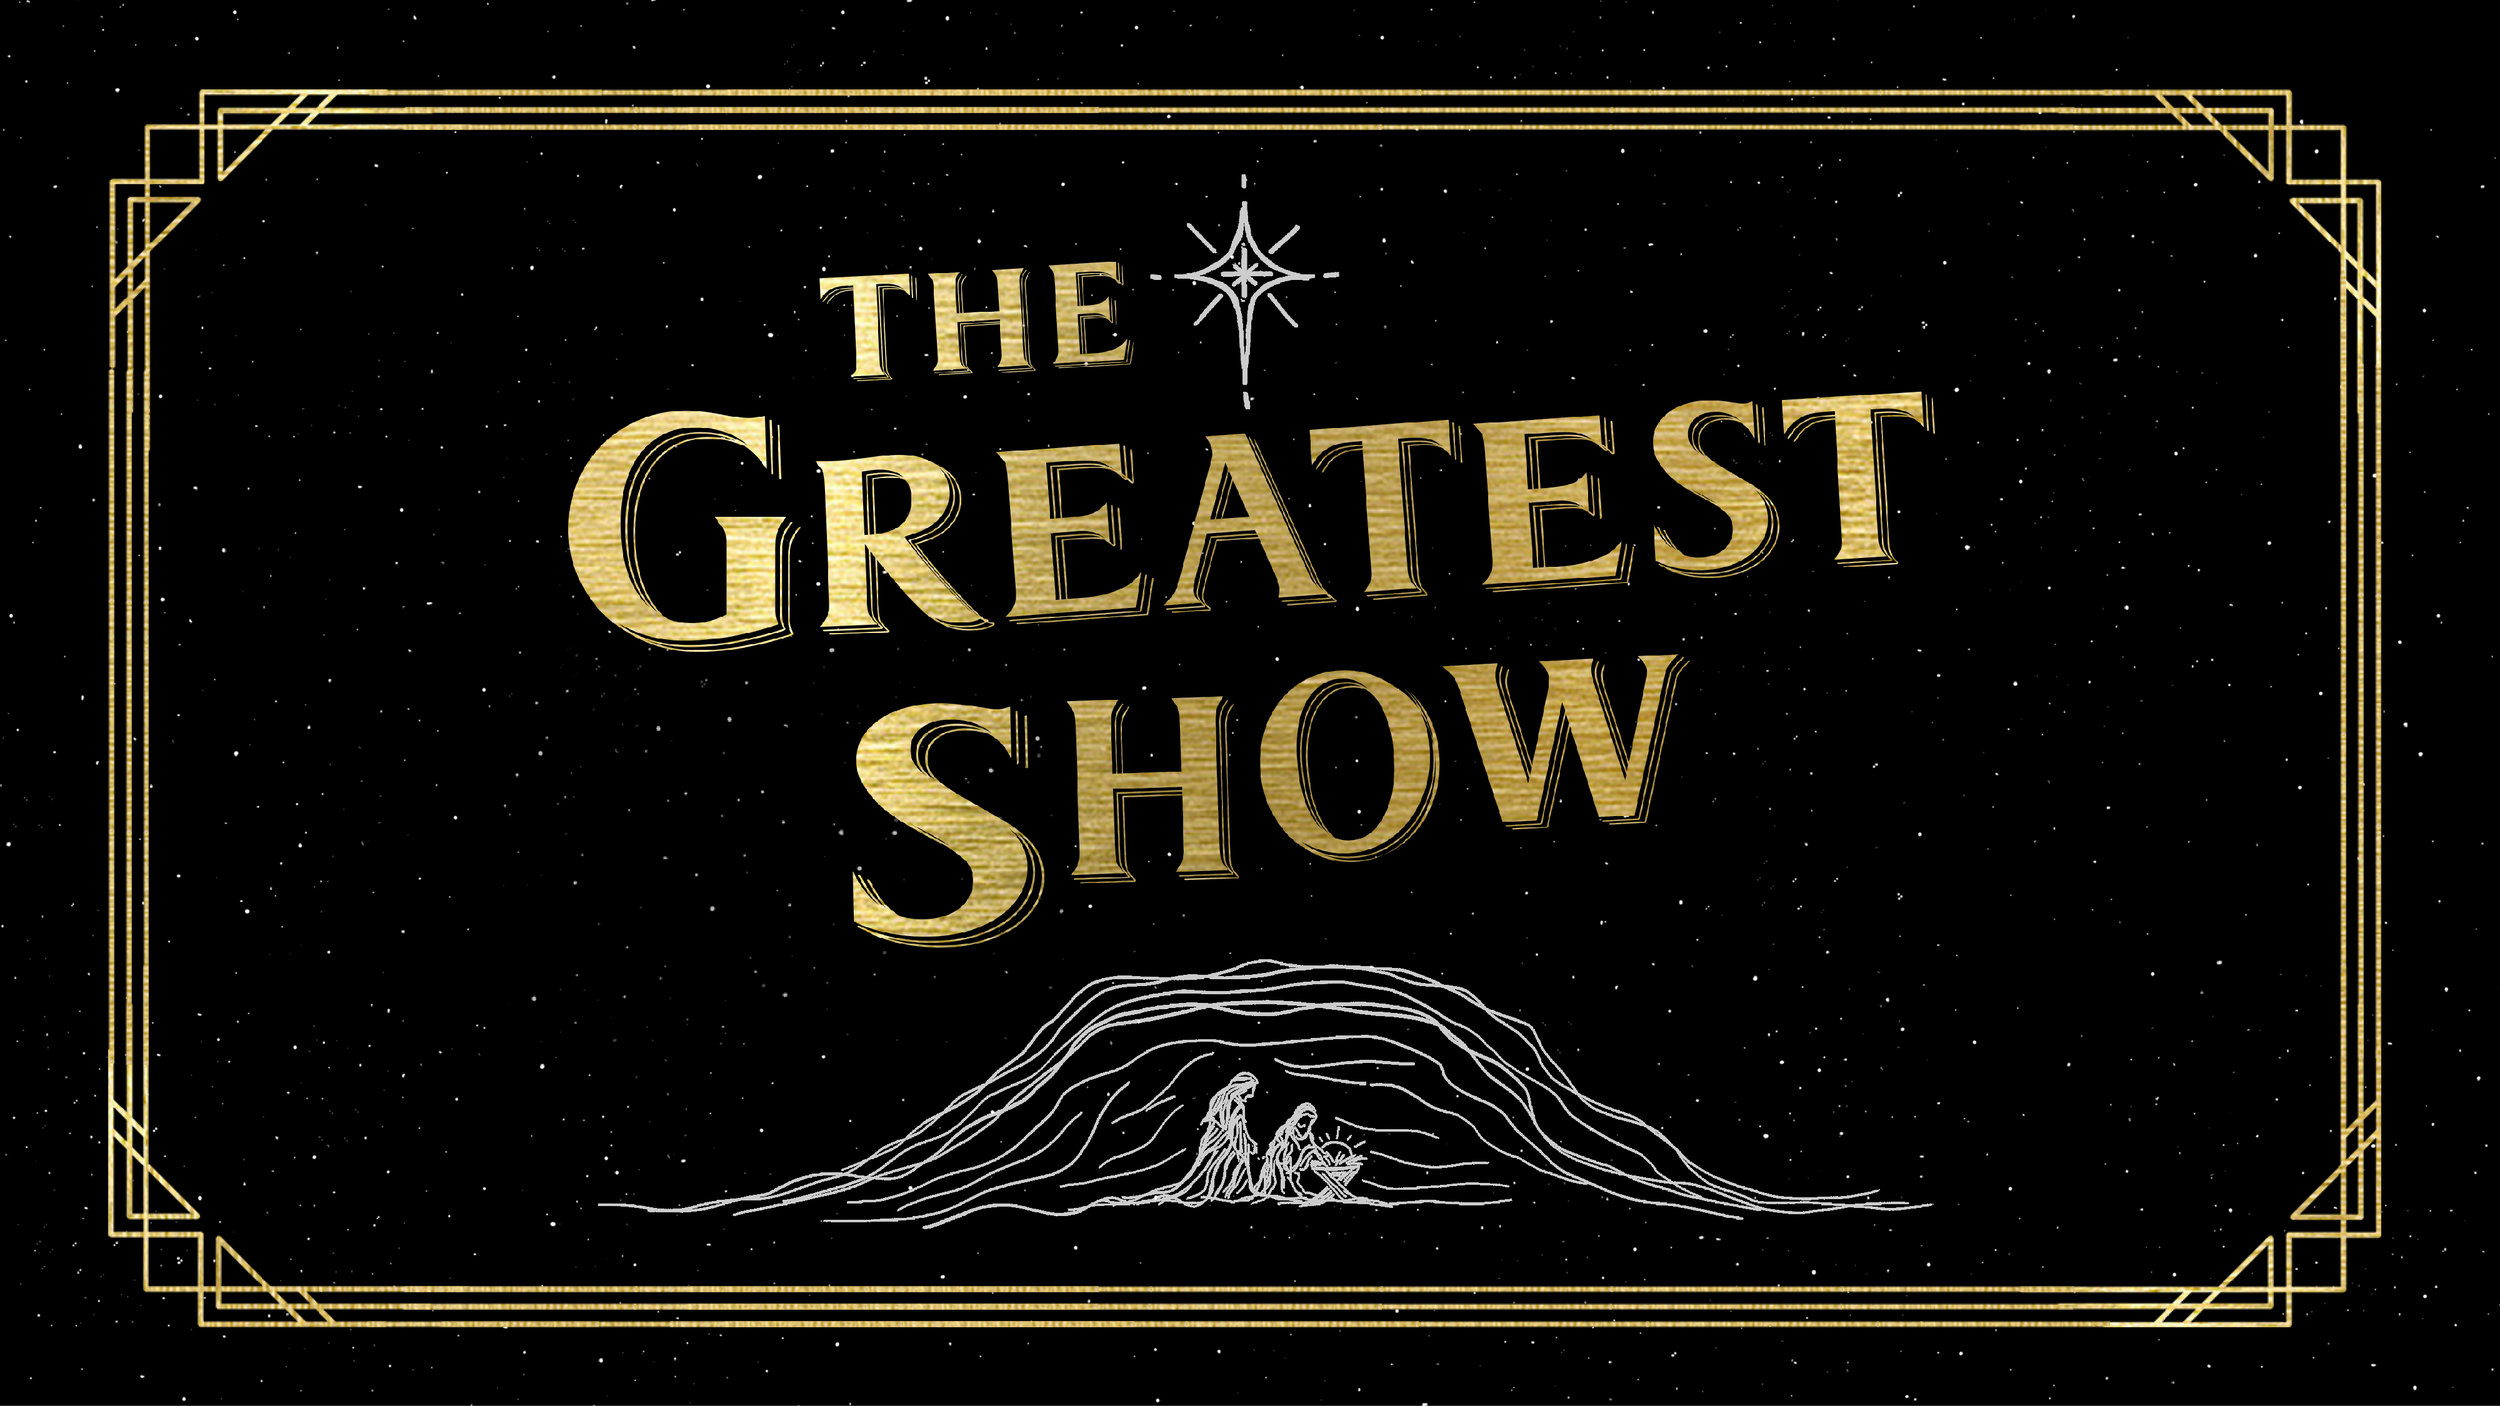 The Greatest Show   12/2/18 - 12/30/18